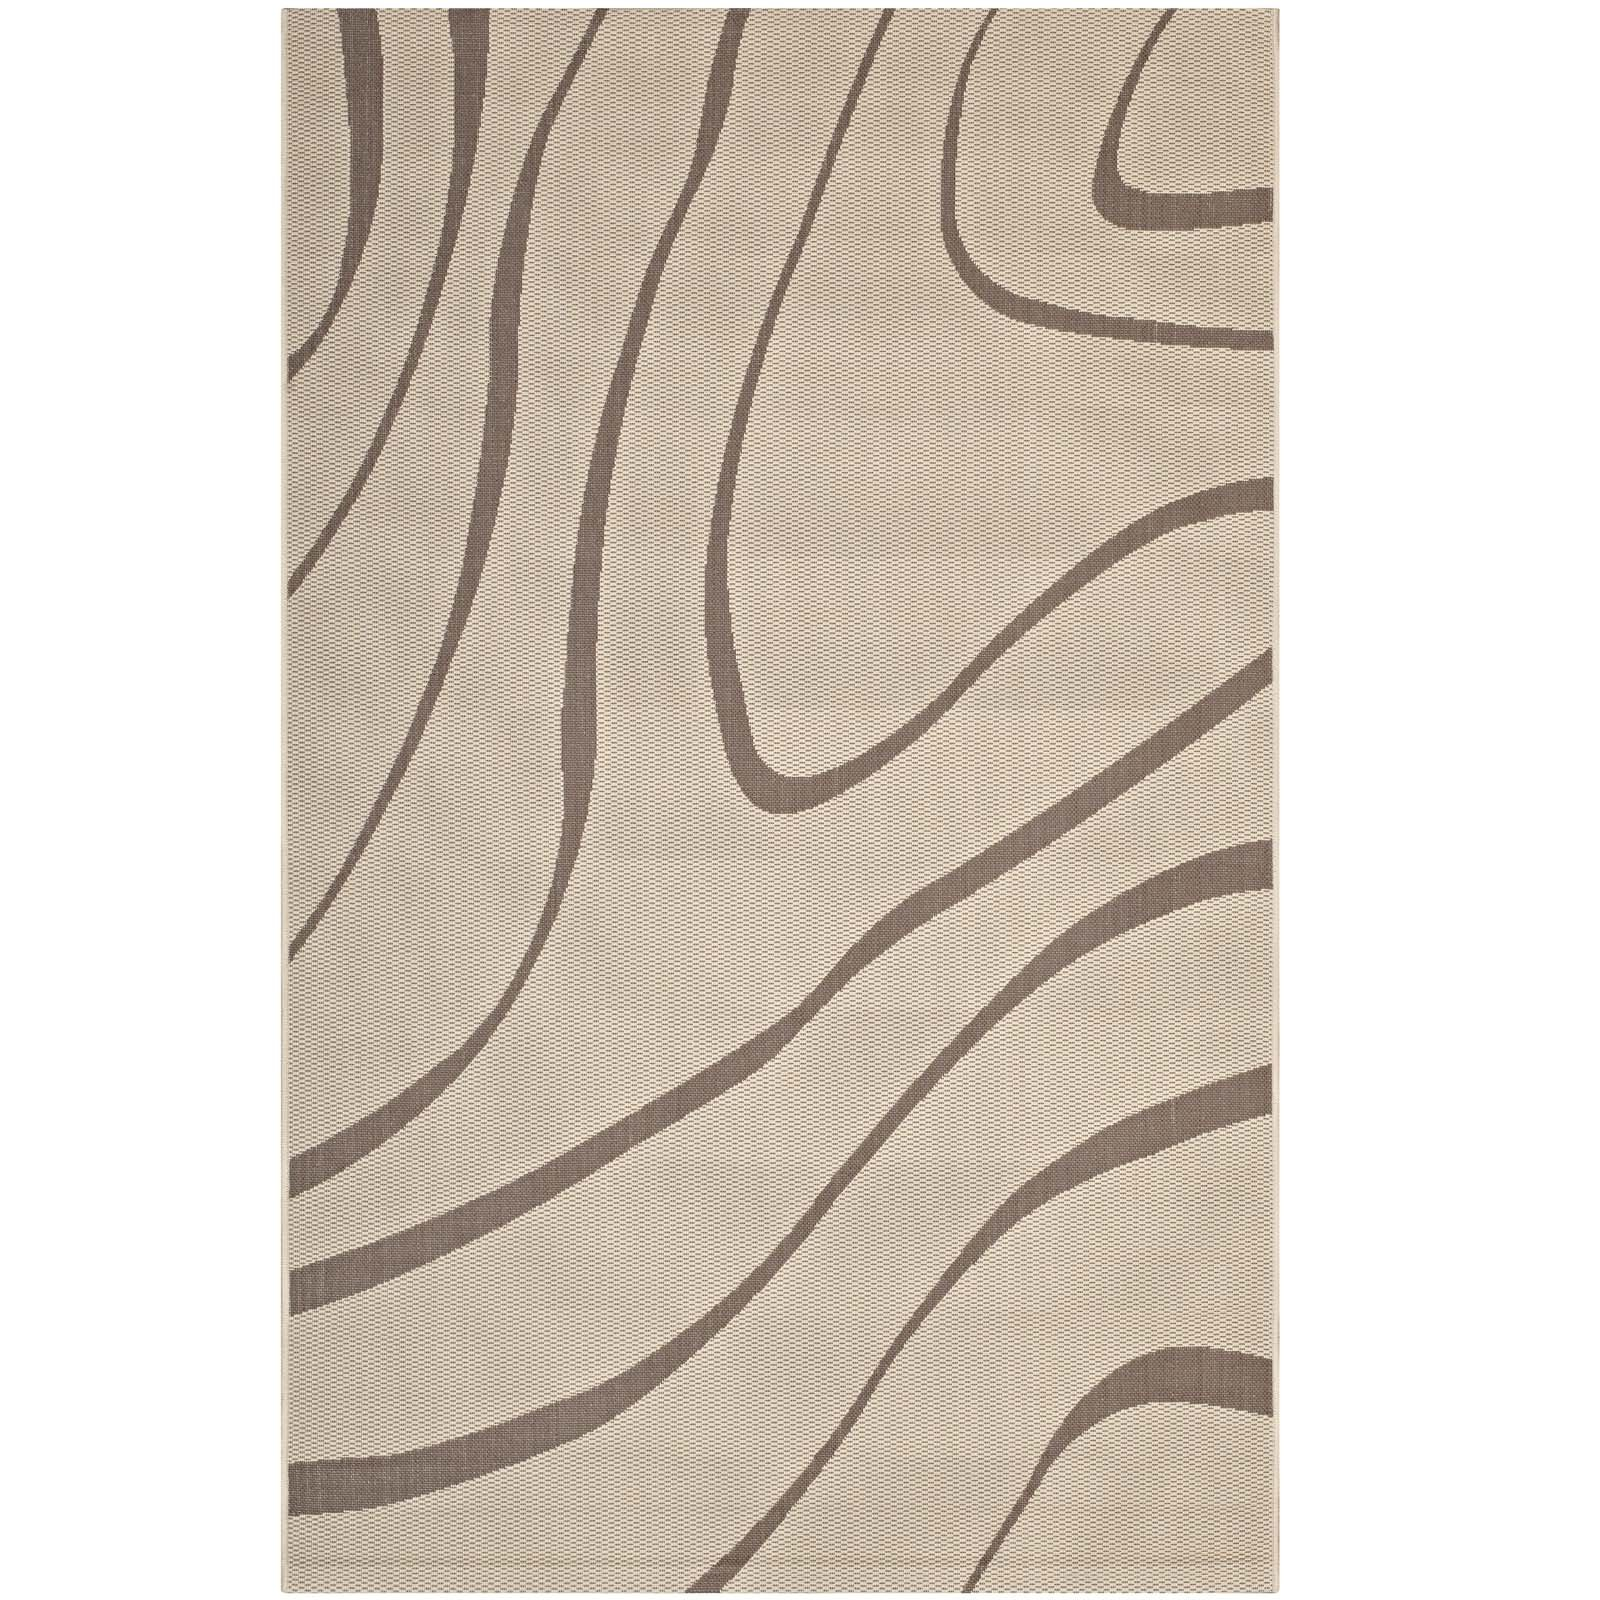 Modway R-1138A-810 Surge Area Rug Chevron with End Borders 5x8, Twin, Light and Dark Beige